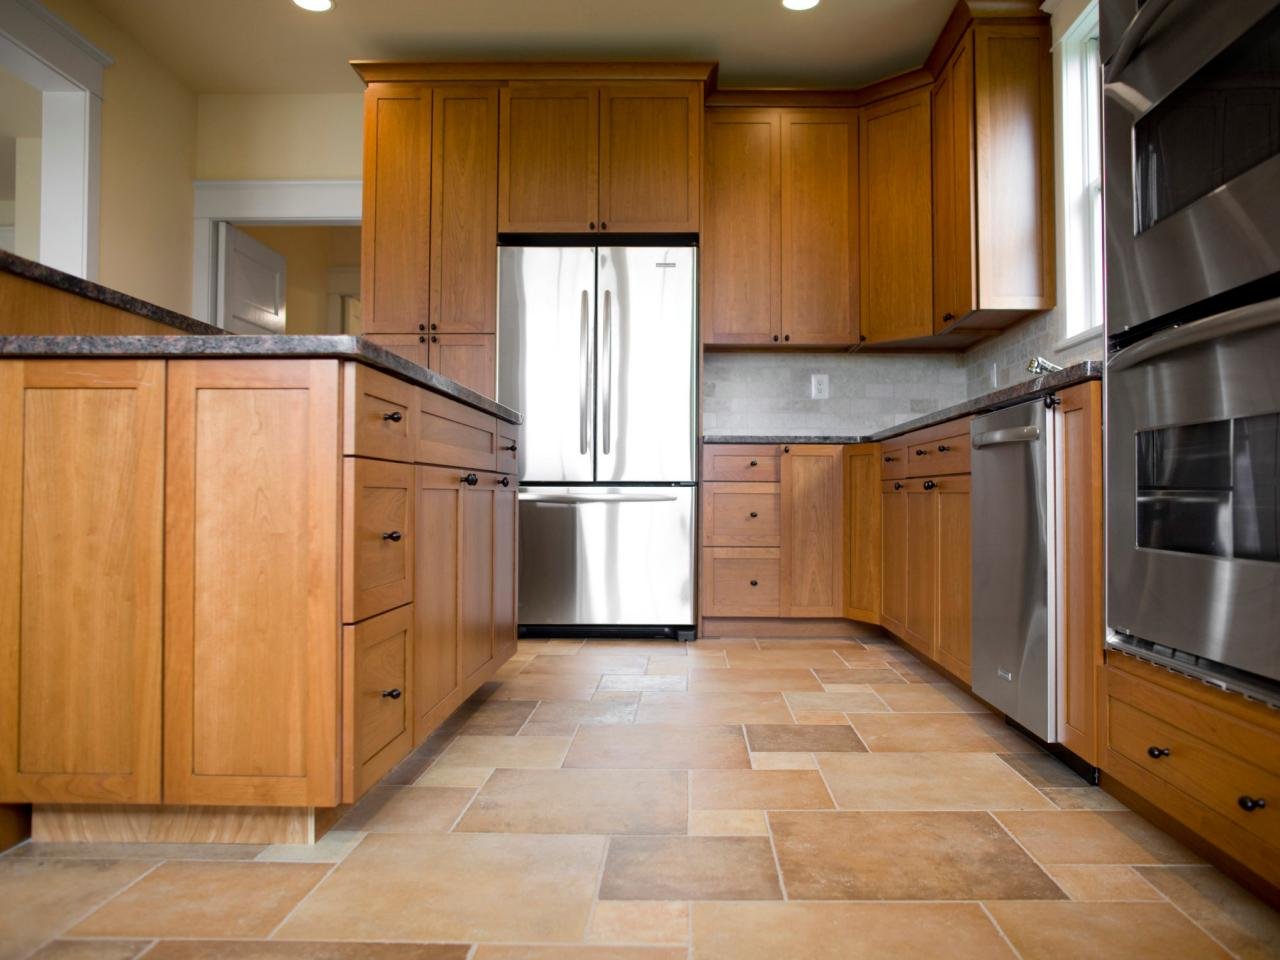 Kitchen Tile Floor Patterns Whats The Best Kitchen Floor Tile Diy